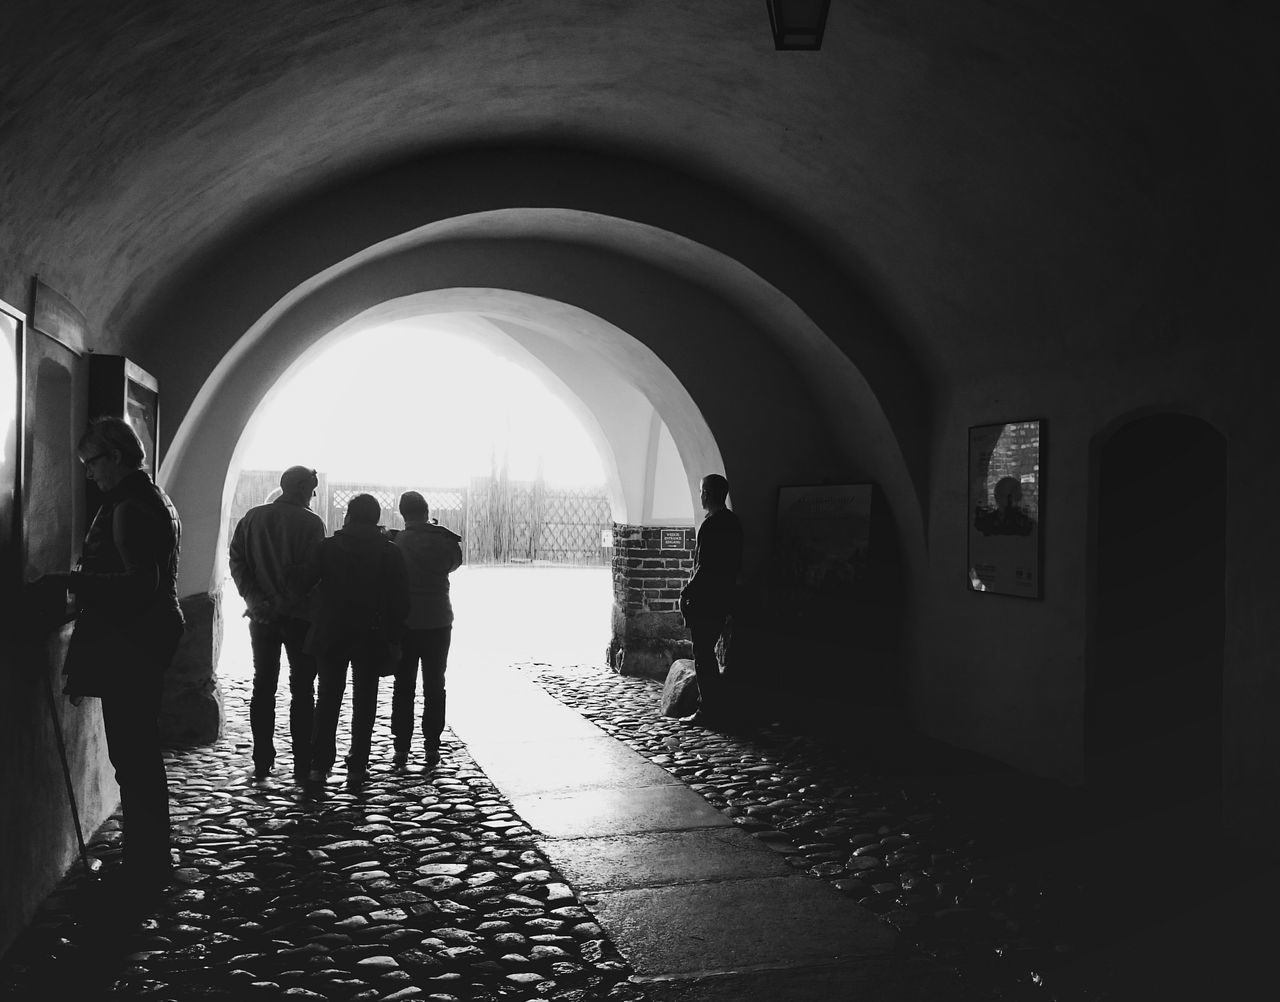 Silhouette Arch Full Length Built Structure Architecture Real People People City Street Silhouettes Silhouettes Of A City Silhouette Photography Silhouettes Of People Poland Lifestyles The Street Photographer - 2017 EyeEm Awards